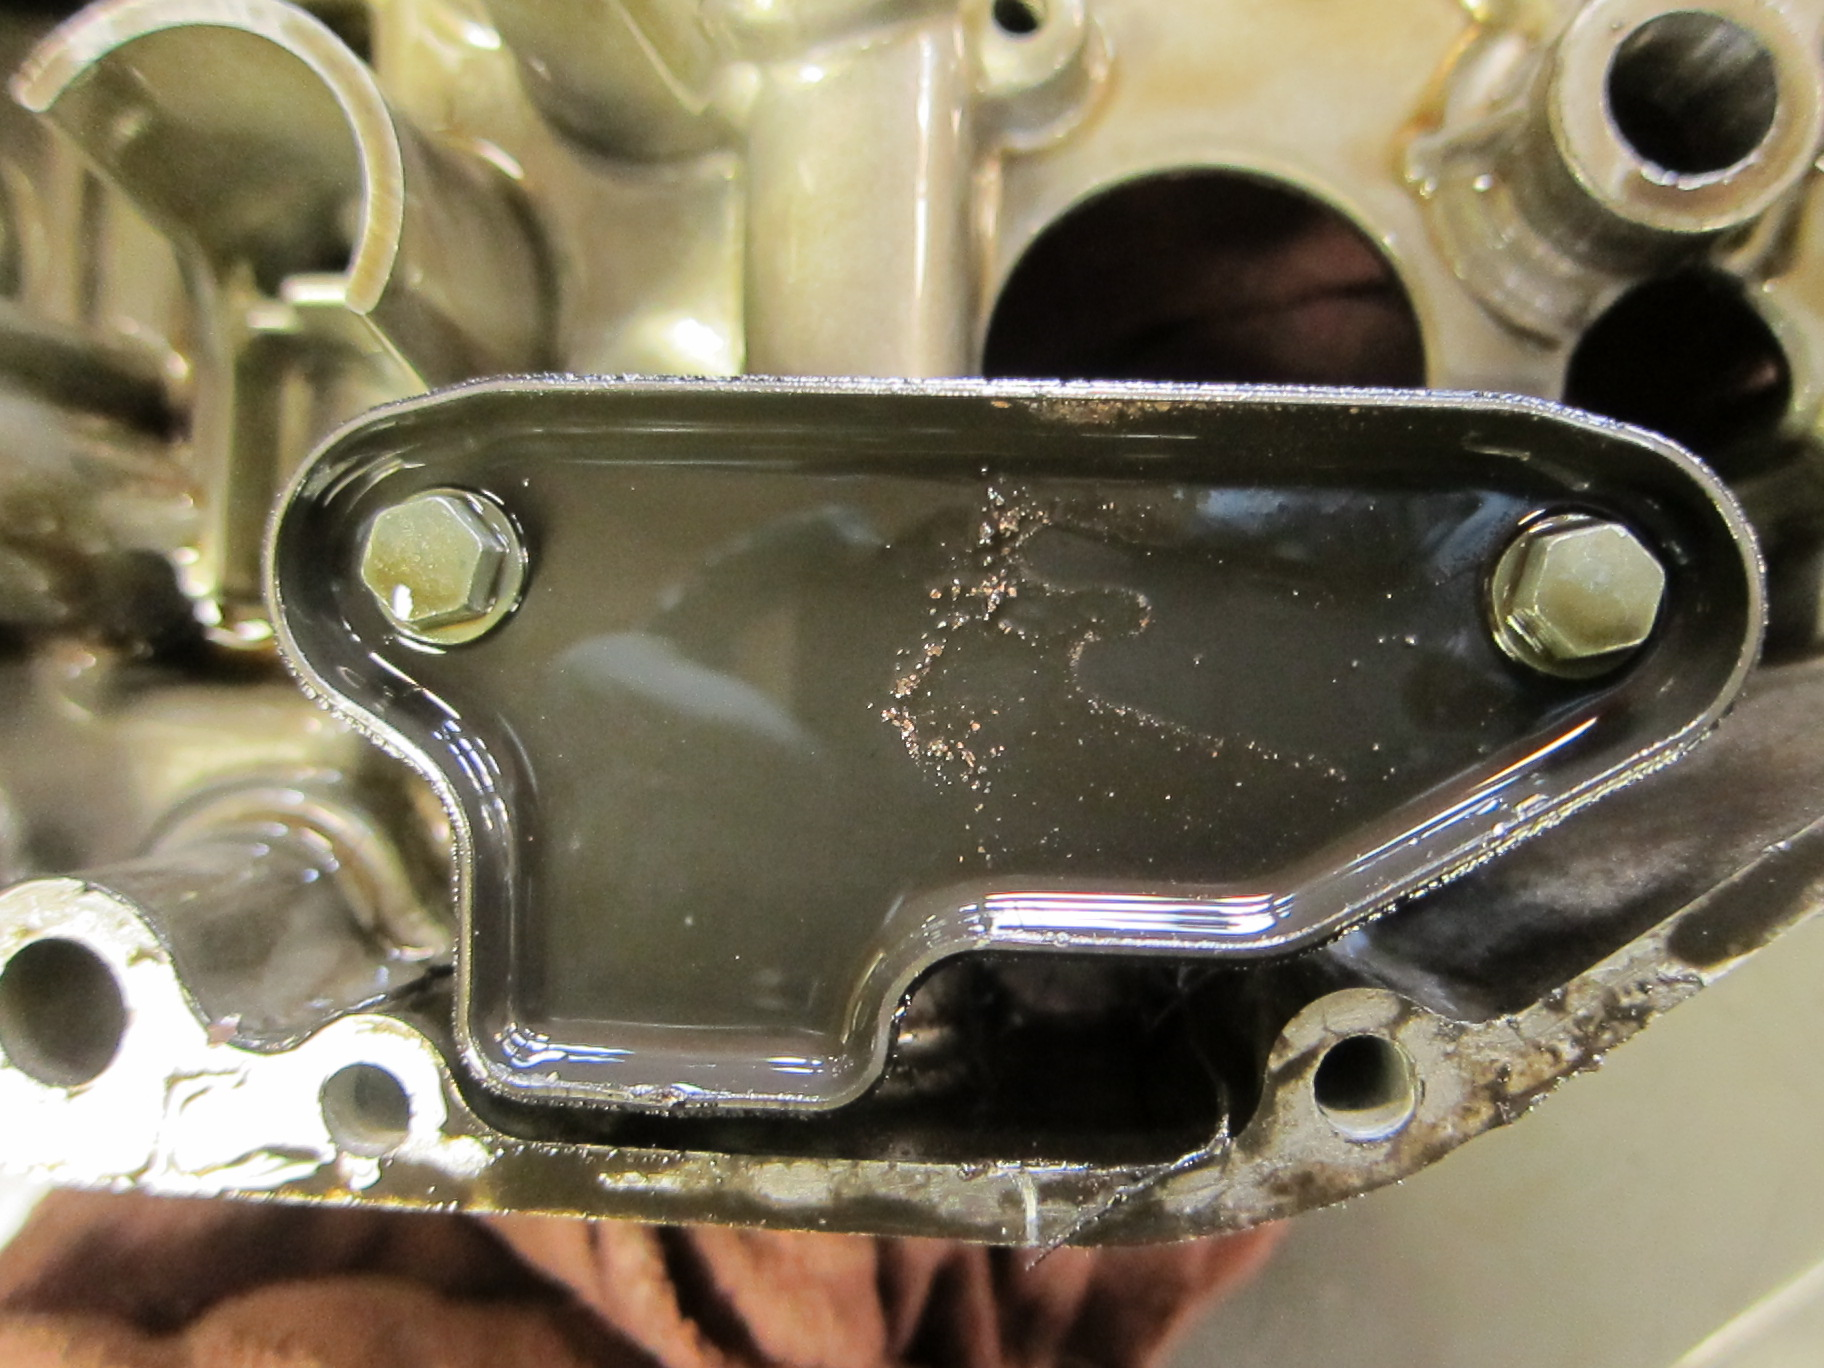 Look carefully--metal particles are adhering to the lower surfaces of the engine